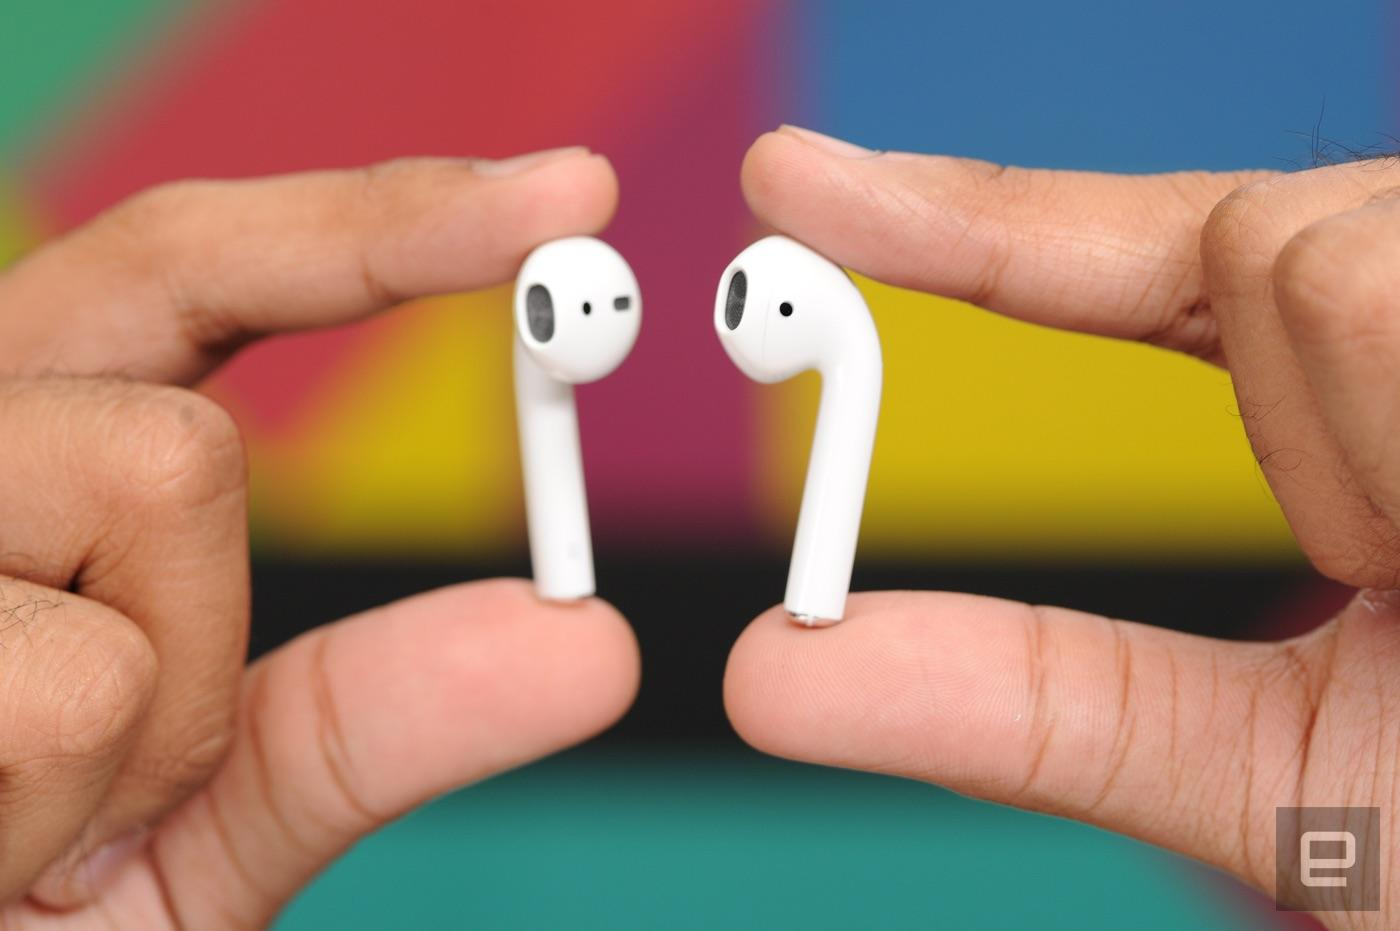 The AirPods aren't a must-buy (yet)